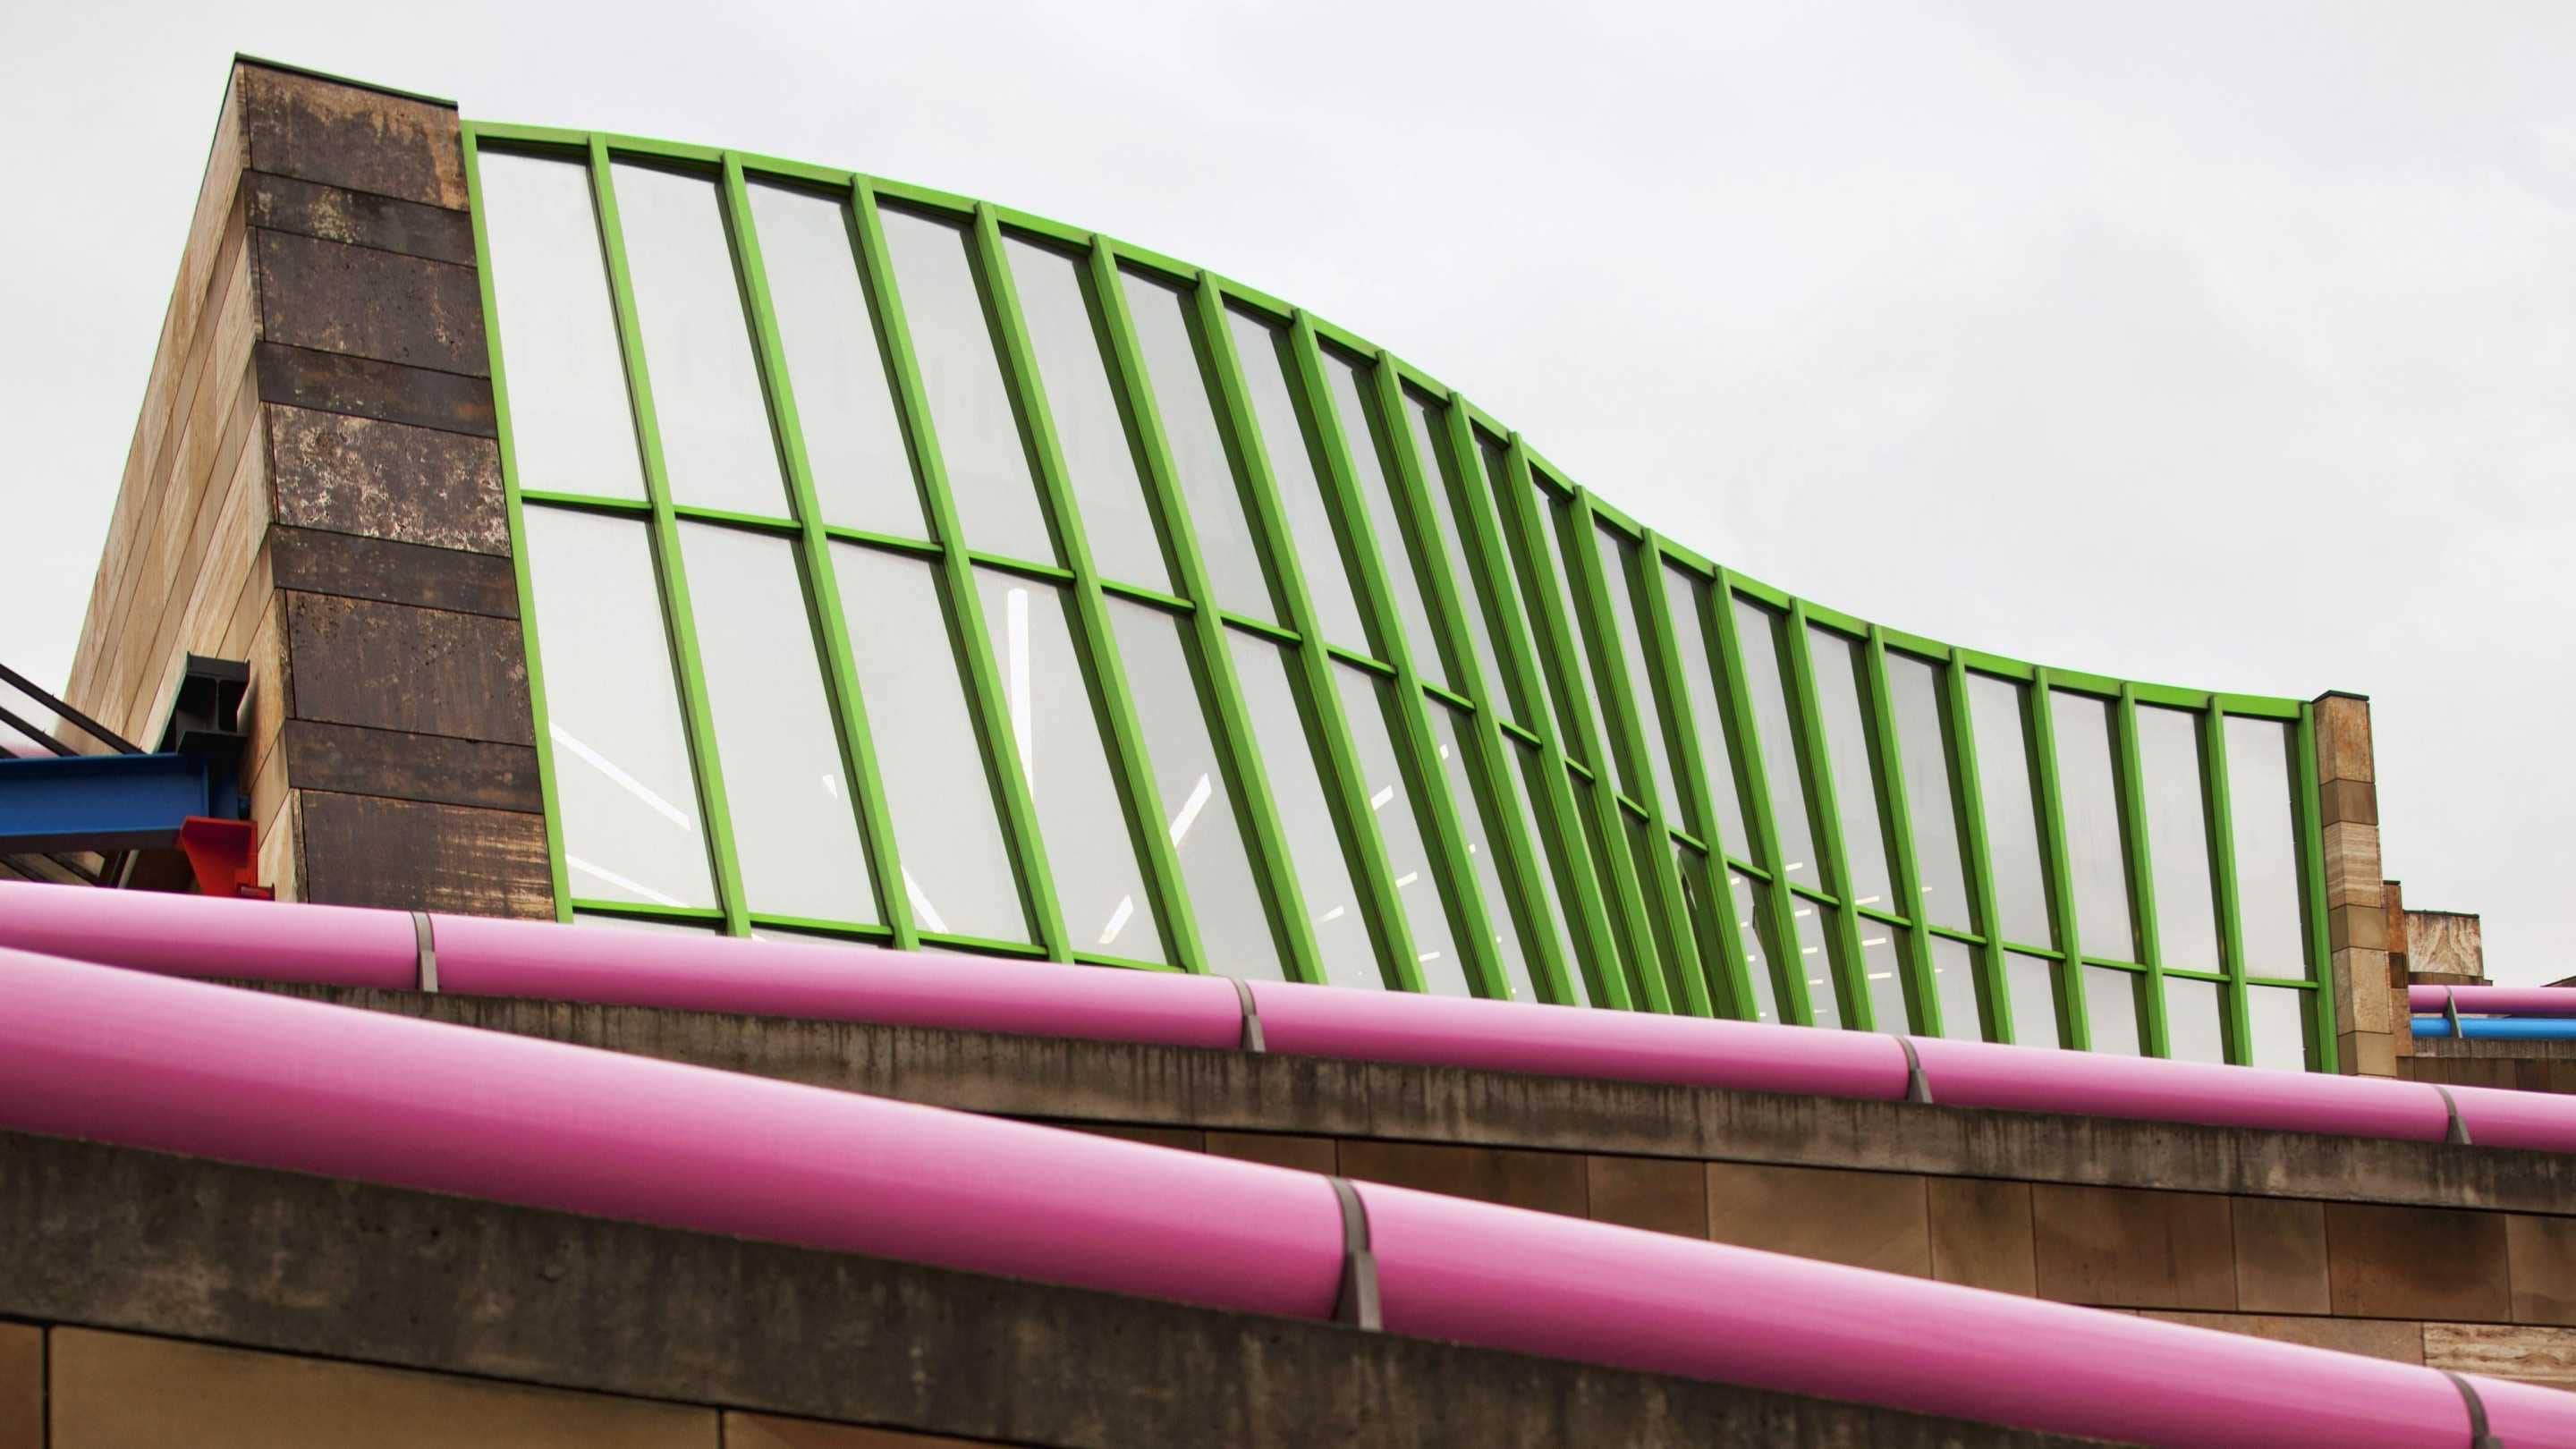 Exterior of Staatsgalerie with wavy windows and pink hand rails